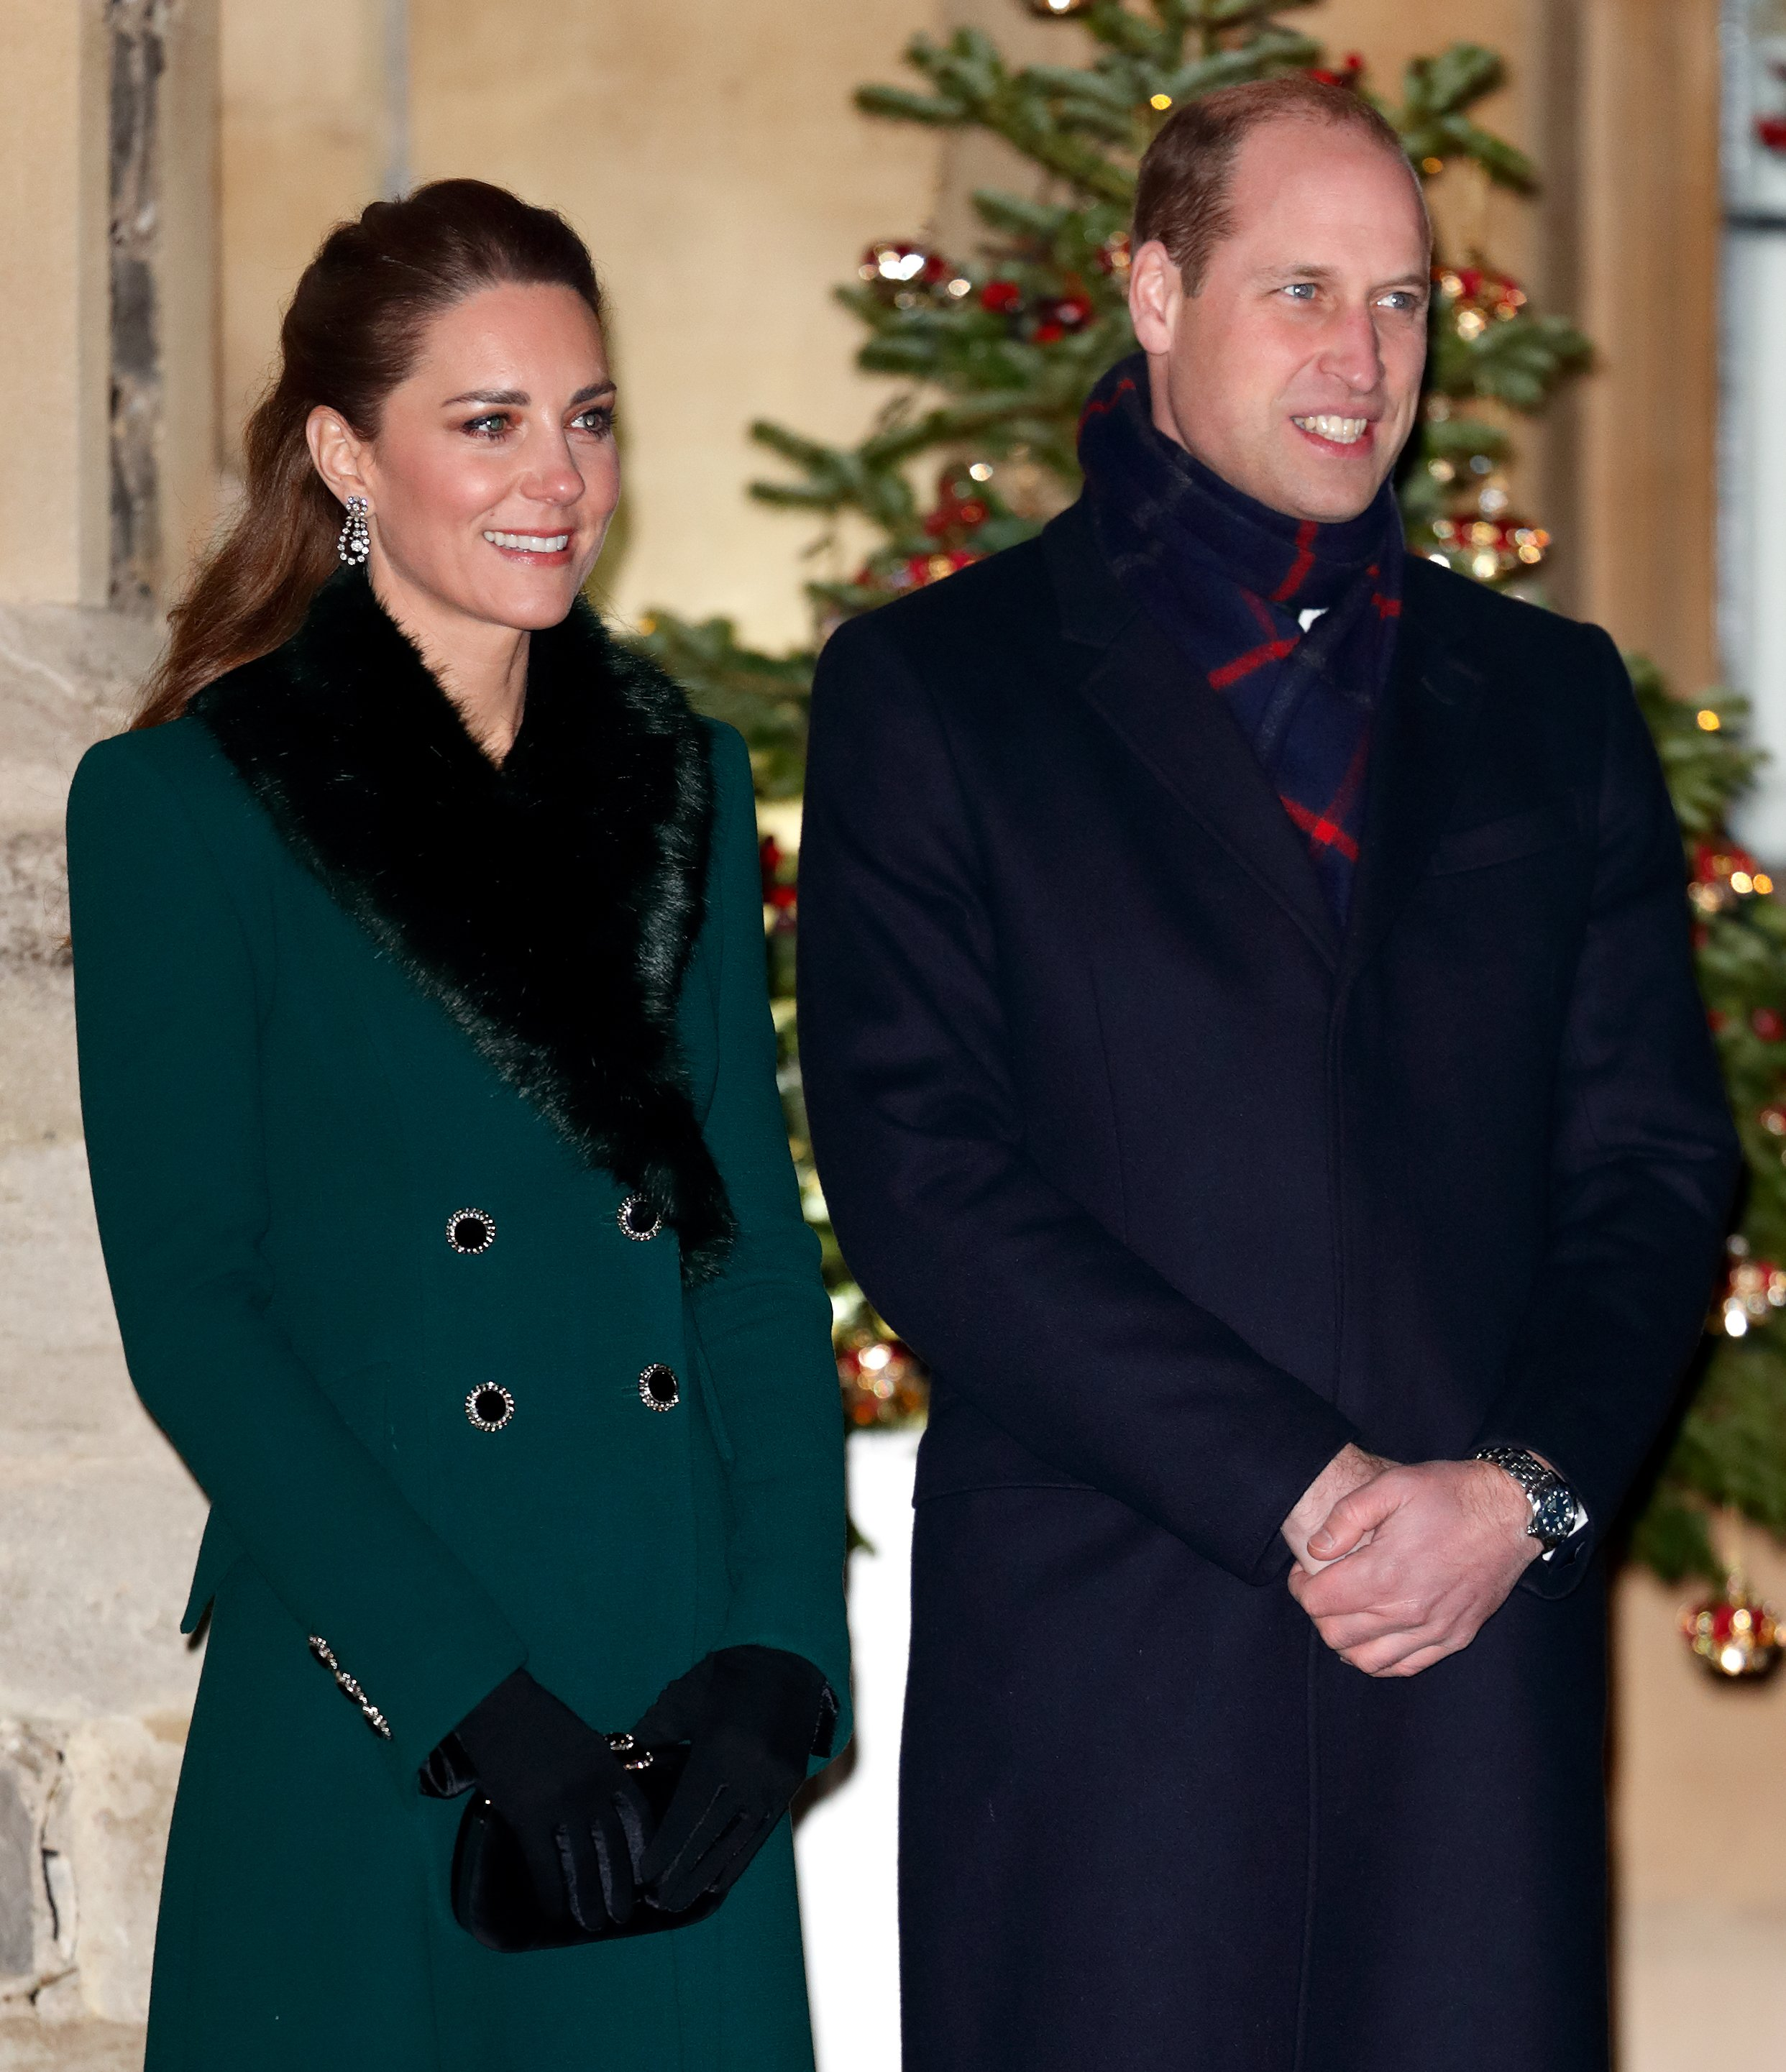 The Duke and Duchess of Cambridge preparing to thank essential workers at an event at Windsor Castle, December, 2020. | Photo: Getty Images.